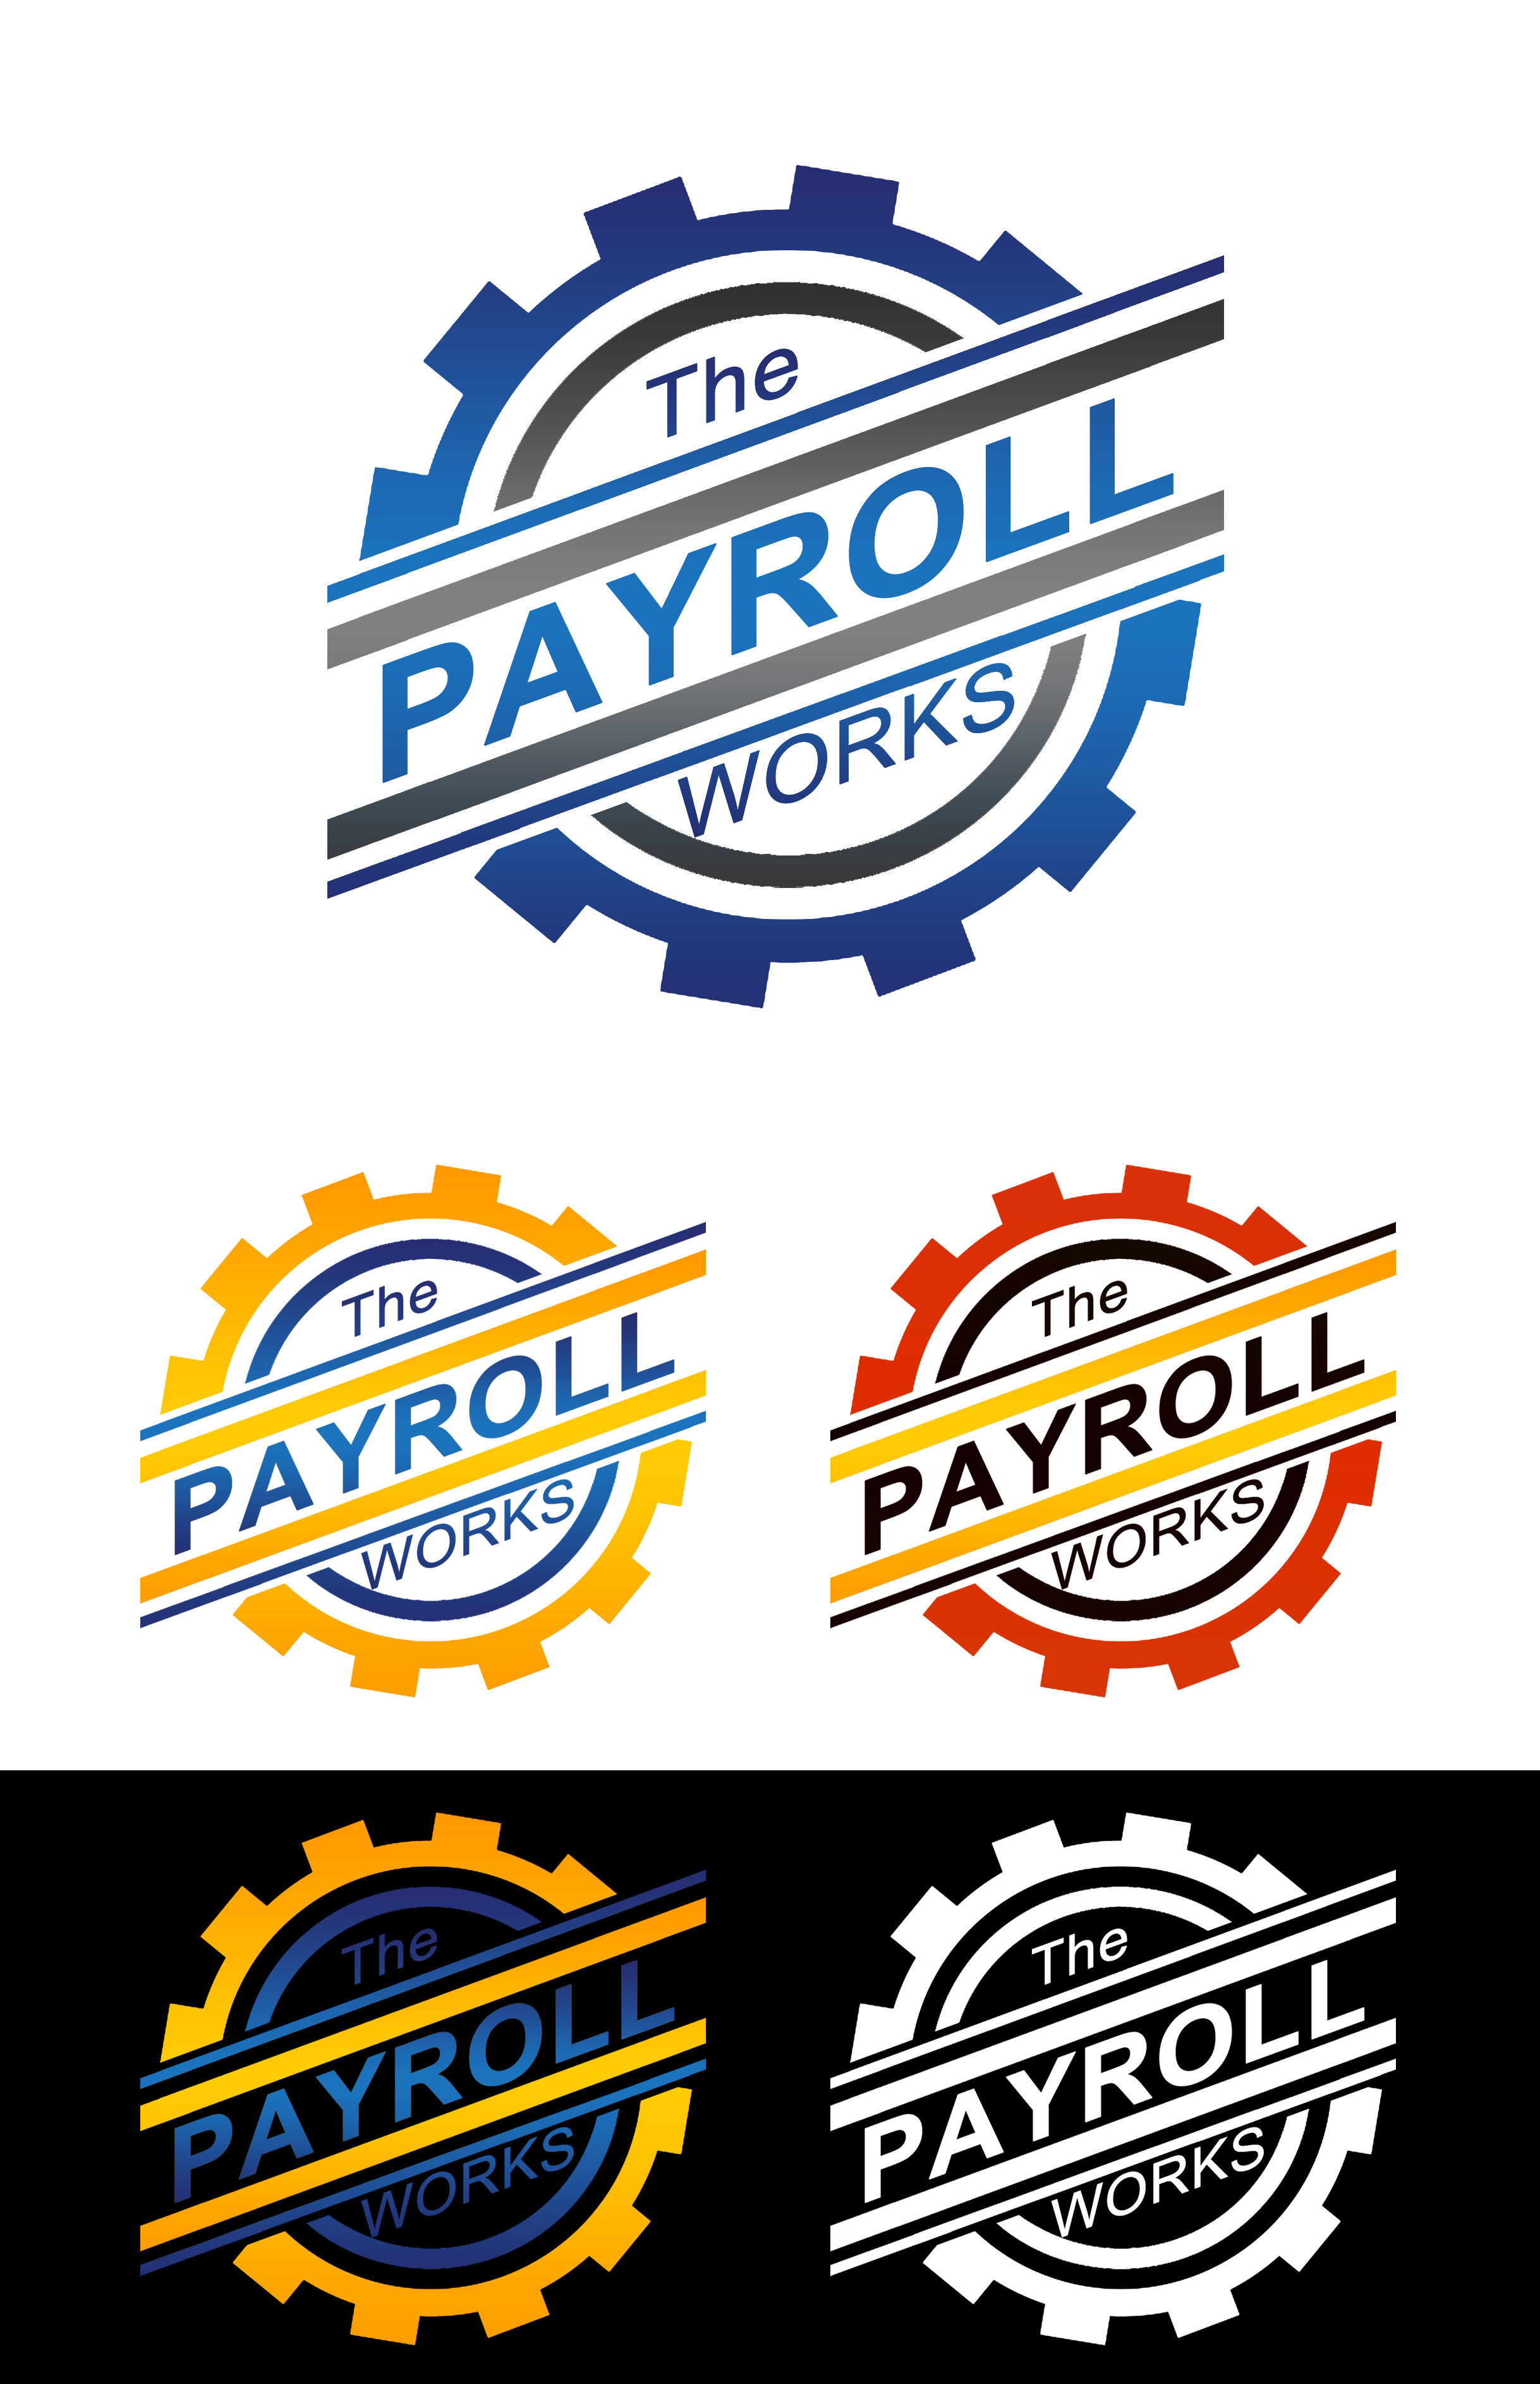 Logo Design by JSDESIGNGROUP - Entry No. 152 in the Logo Design Contest Captivating Logo Design for The Payroll Works.